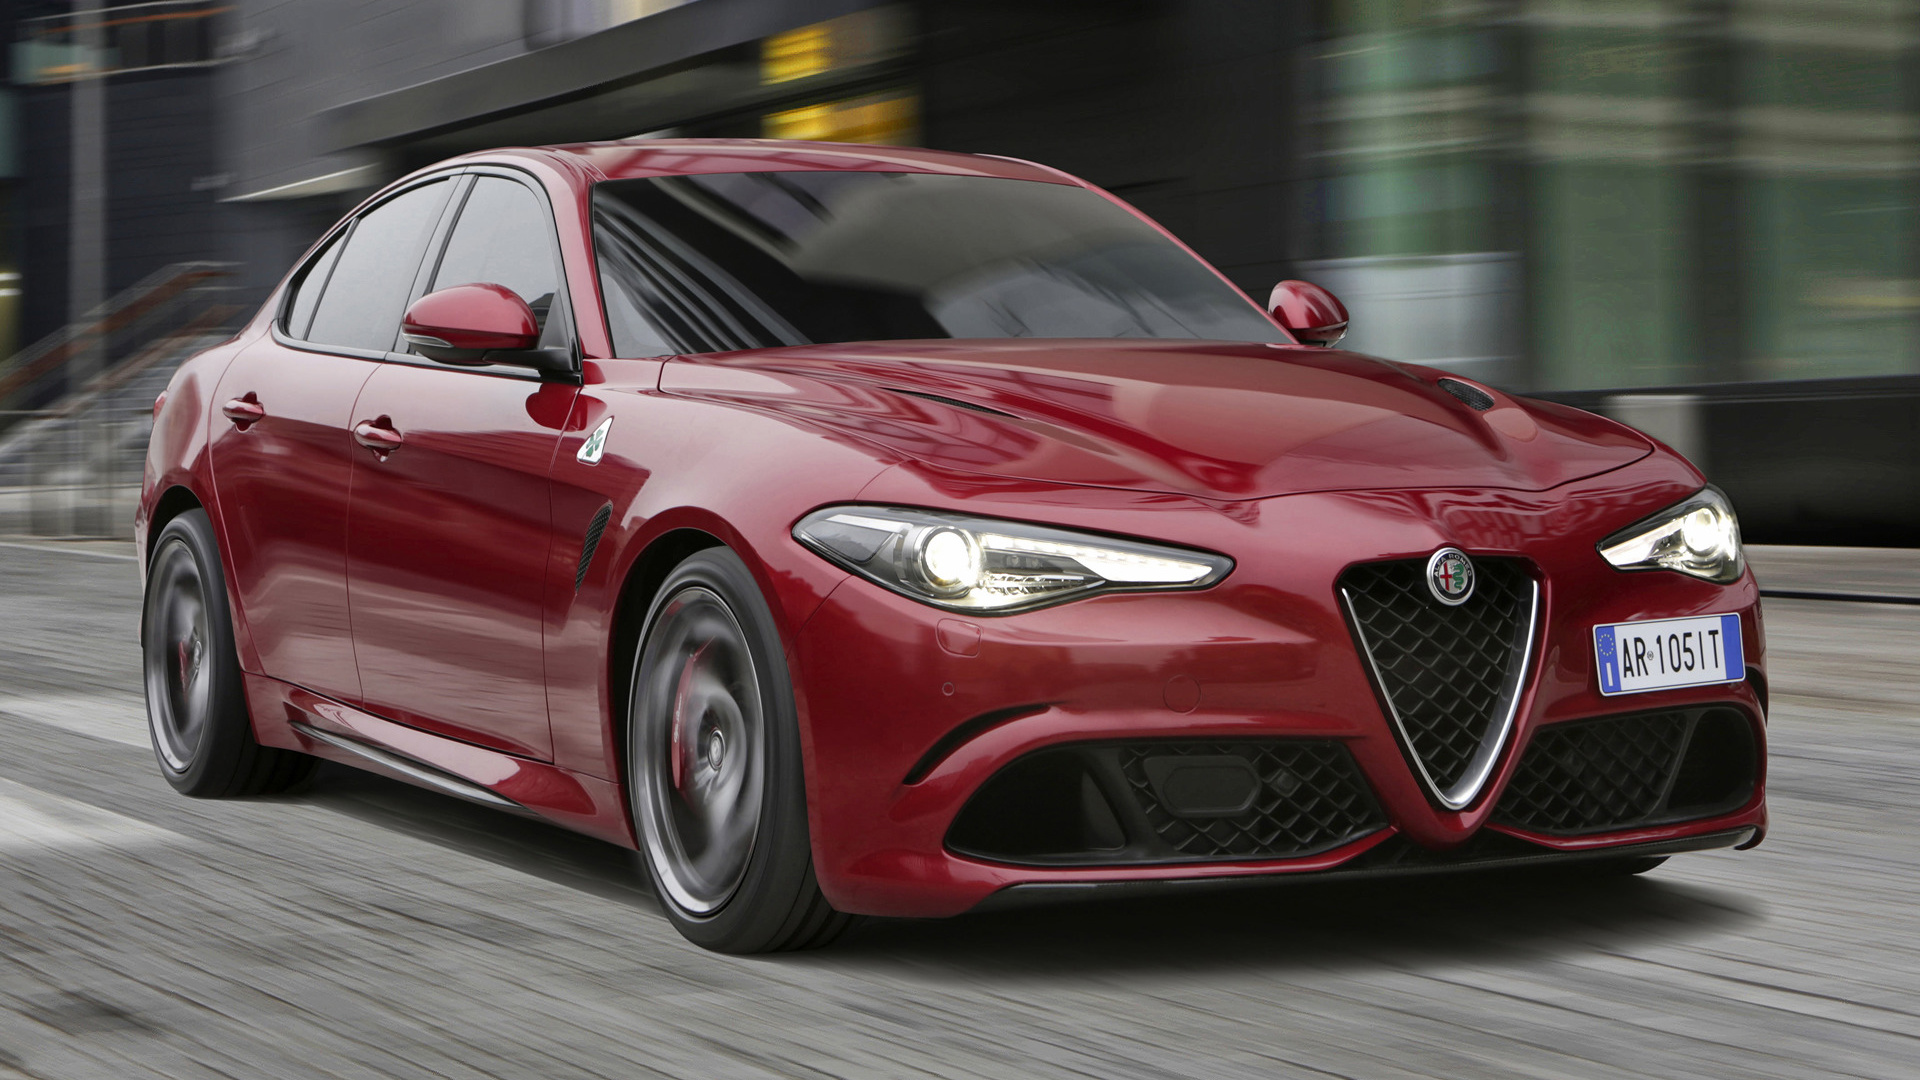 Alfa Romeo Giulia Quadrifoglio 2016 Wallpapers And Hd Images Car